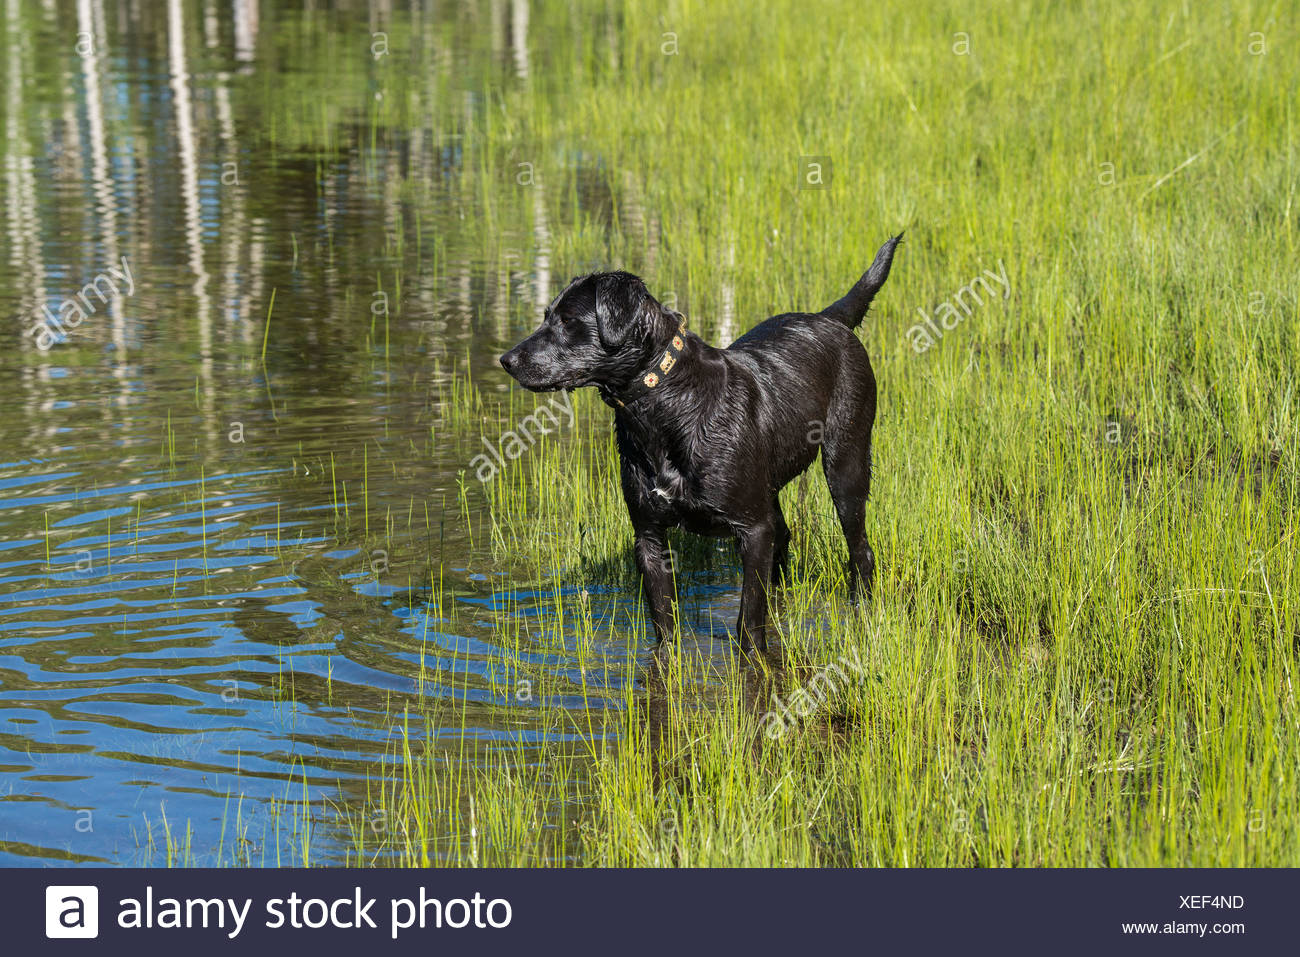 A black labrador dog on the edge of standing water. - Stock Image